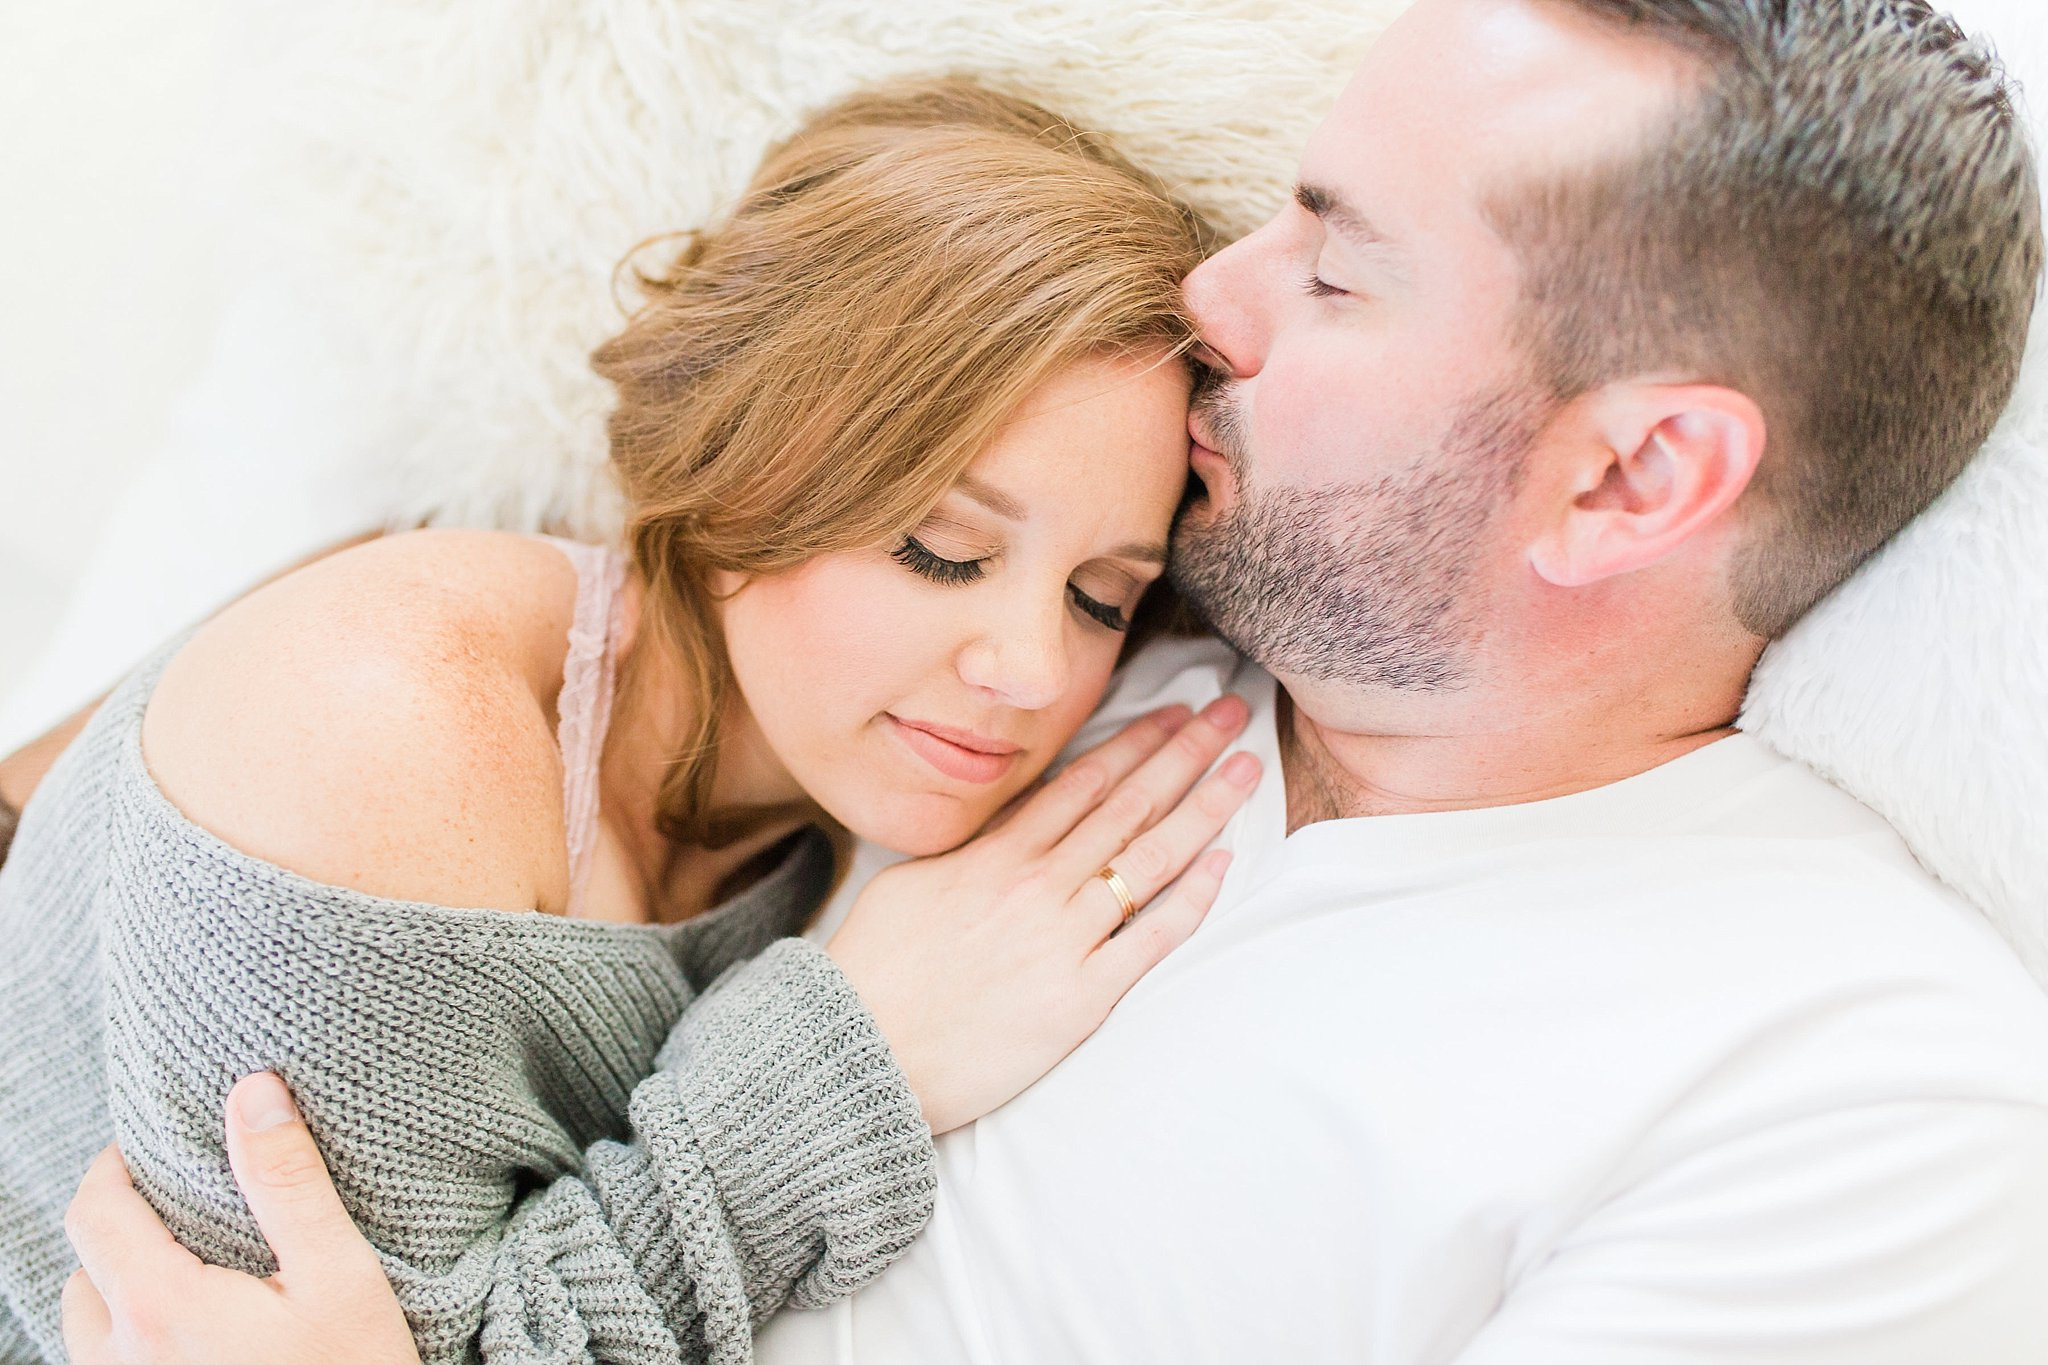 2017 almost destroyed my marriage, read more on cottagehill.co 3.jpg